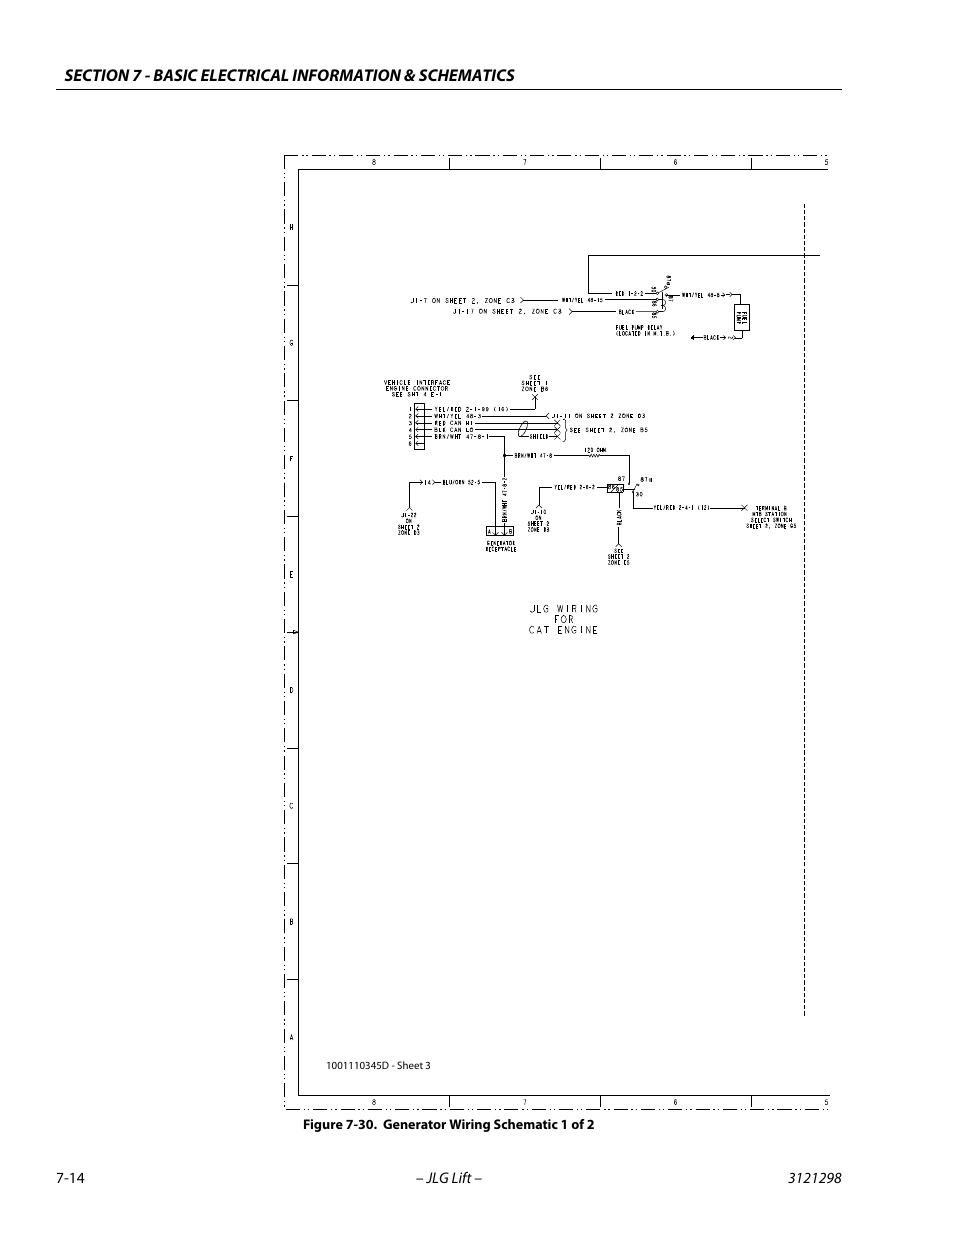 Generator Wiring Schematic 1 Of 2